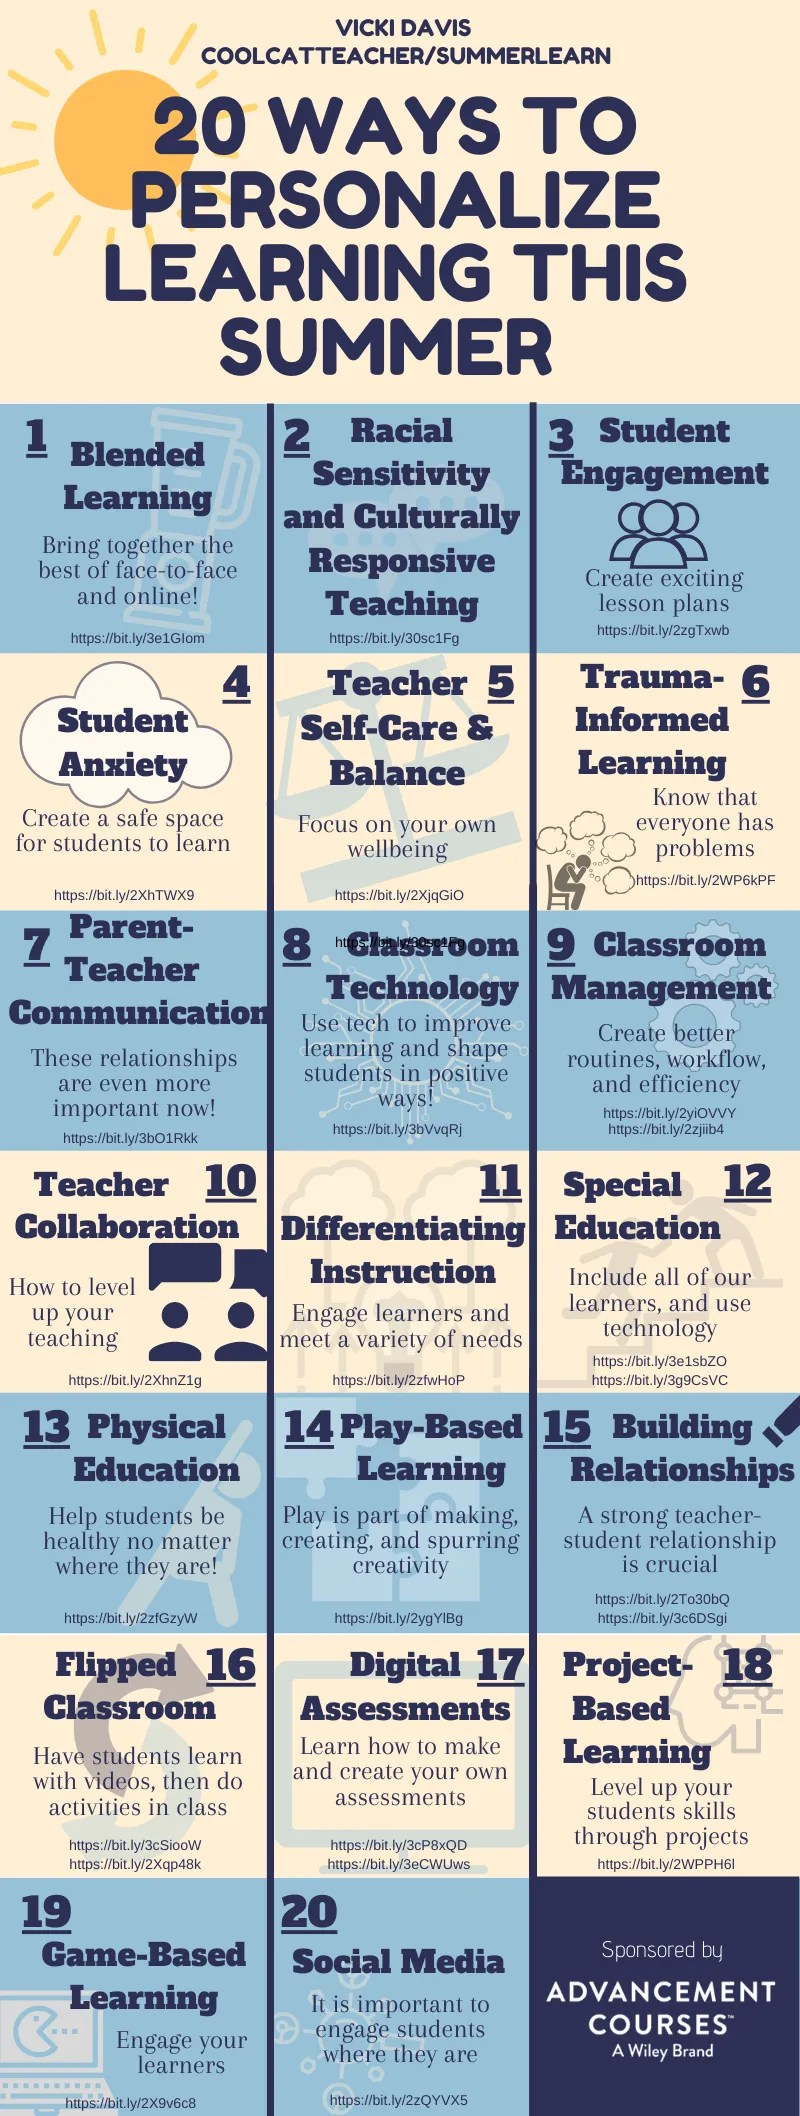 Personalize learning this summer